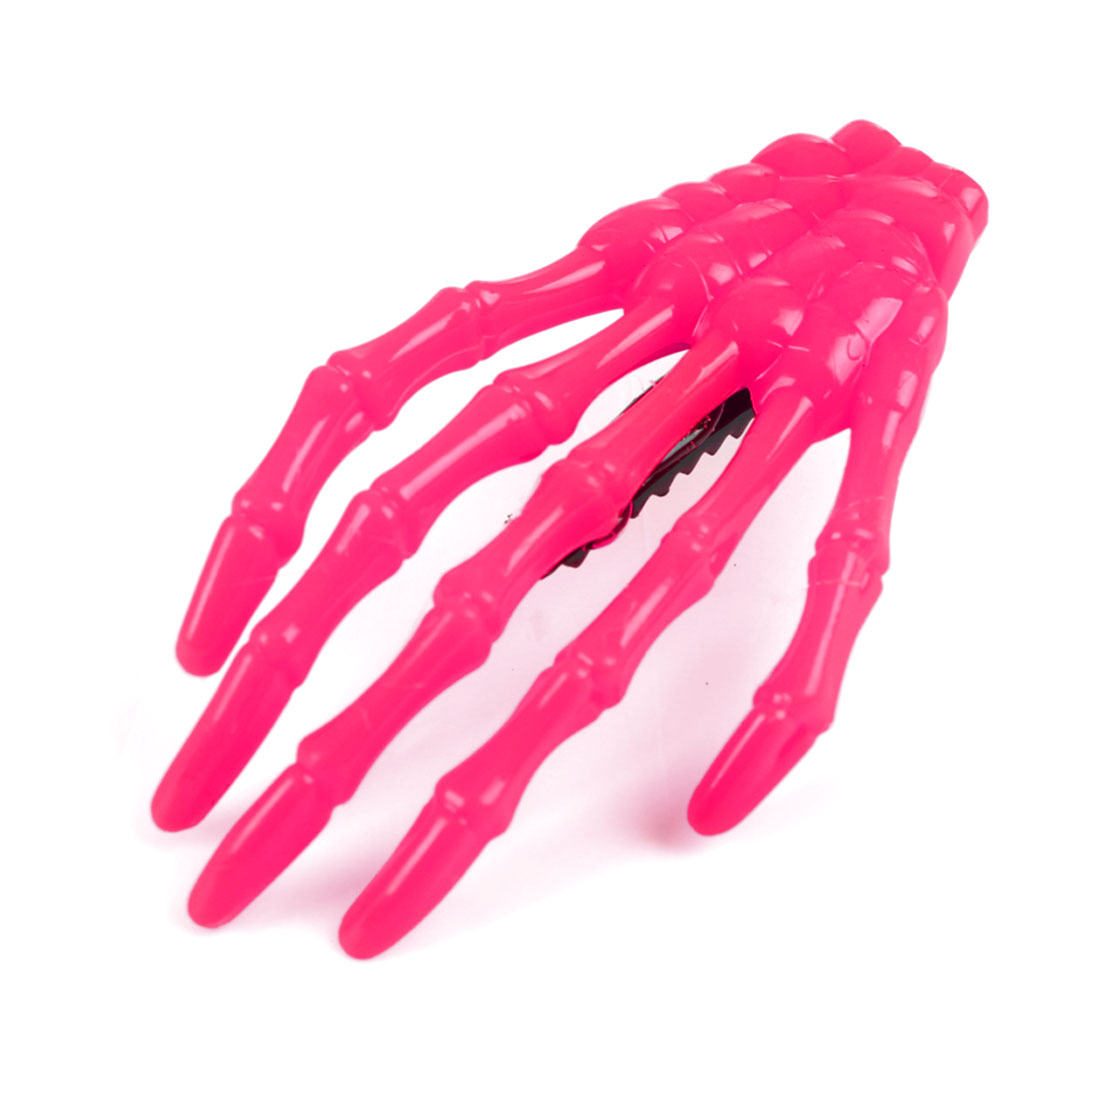 Plastic Skull Bone Hand Shape Claws Metal Teeth Alligator Hairpin Hair Clips